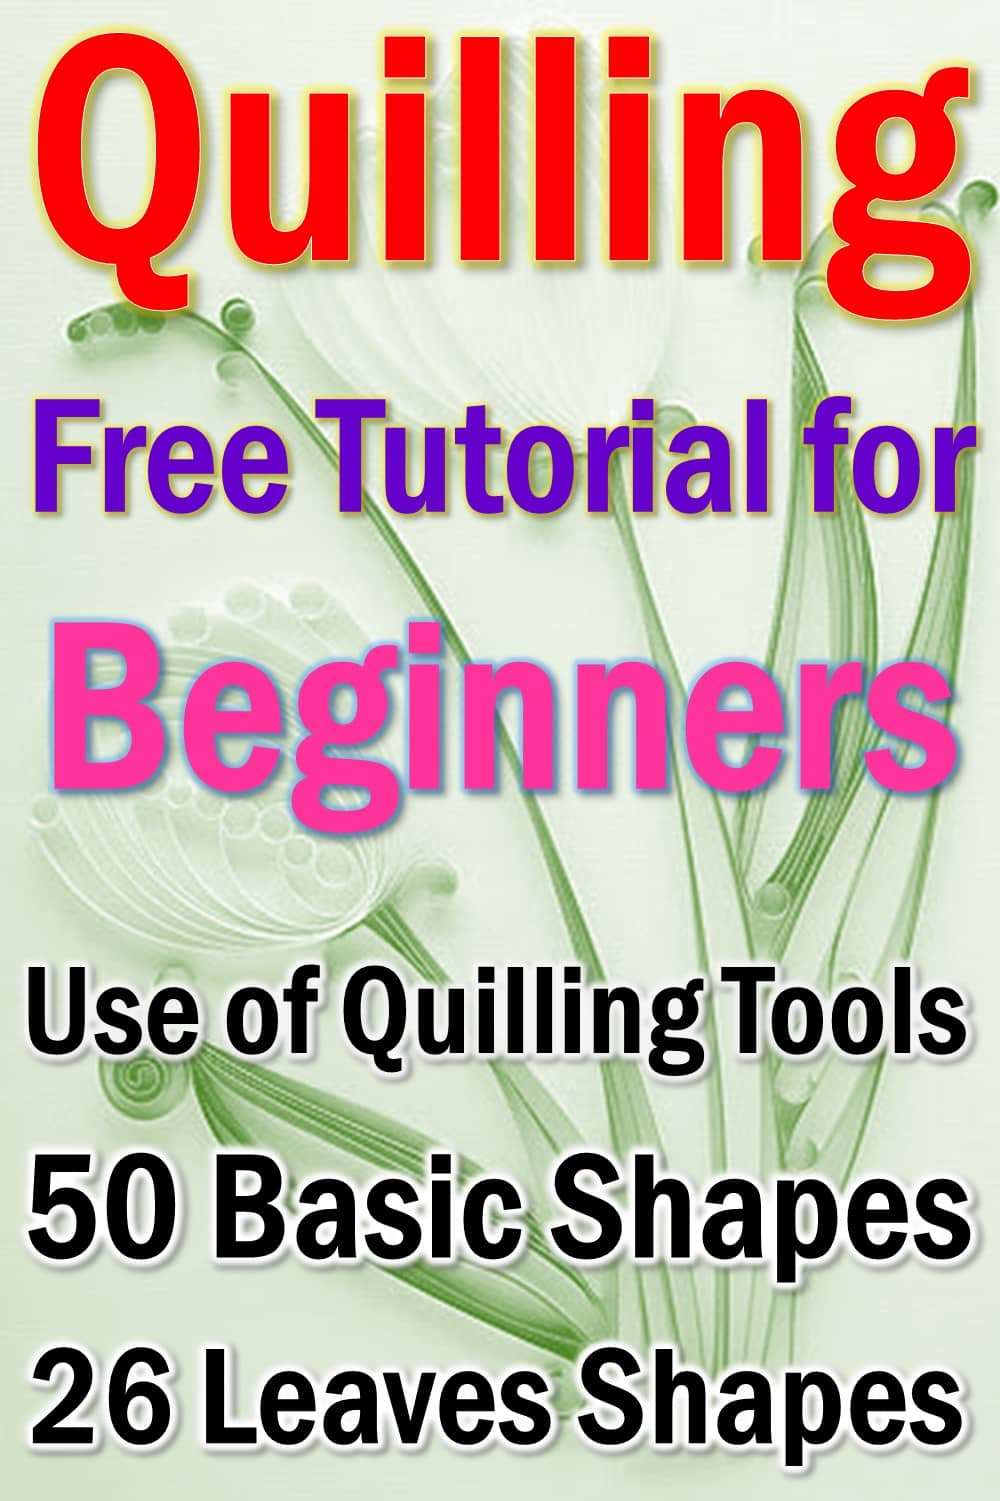 quilling-tutorial-for-beginners-shilpidea